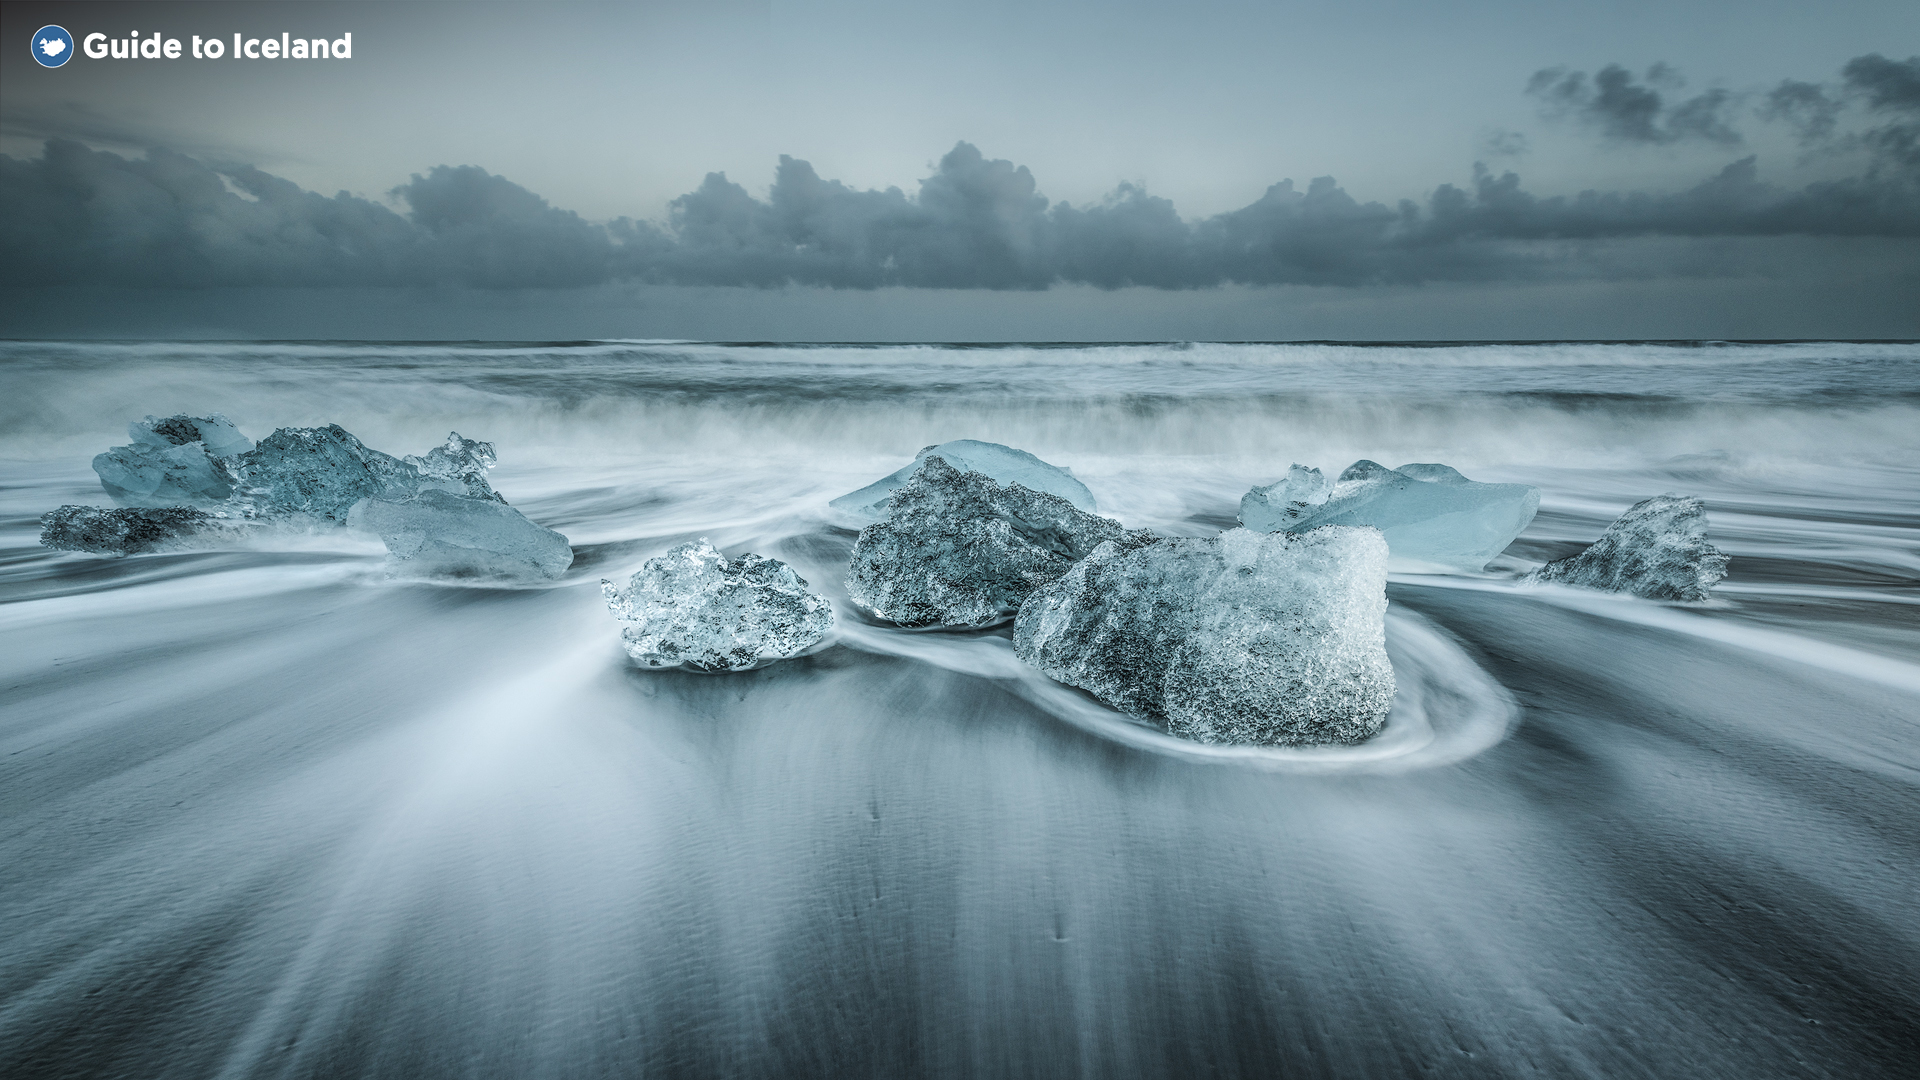 Wind swept pieces of ice sitting on the shore of the Diamond Beach, a black sand beach in the South East of Iceland.